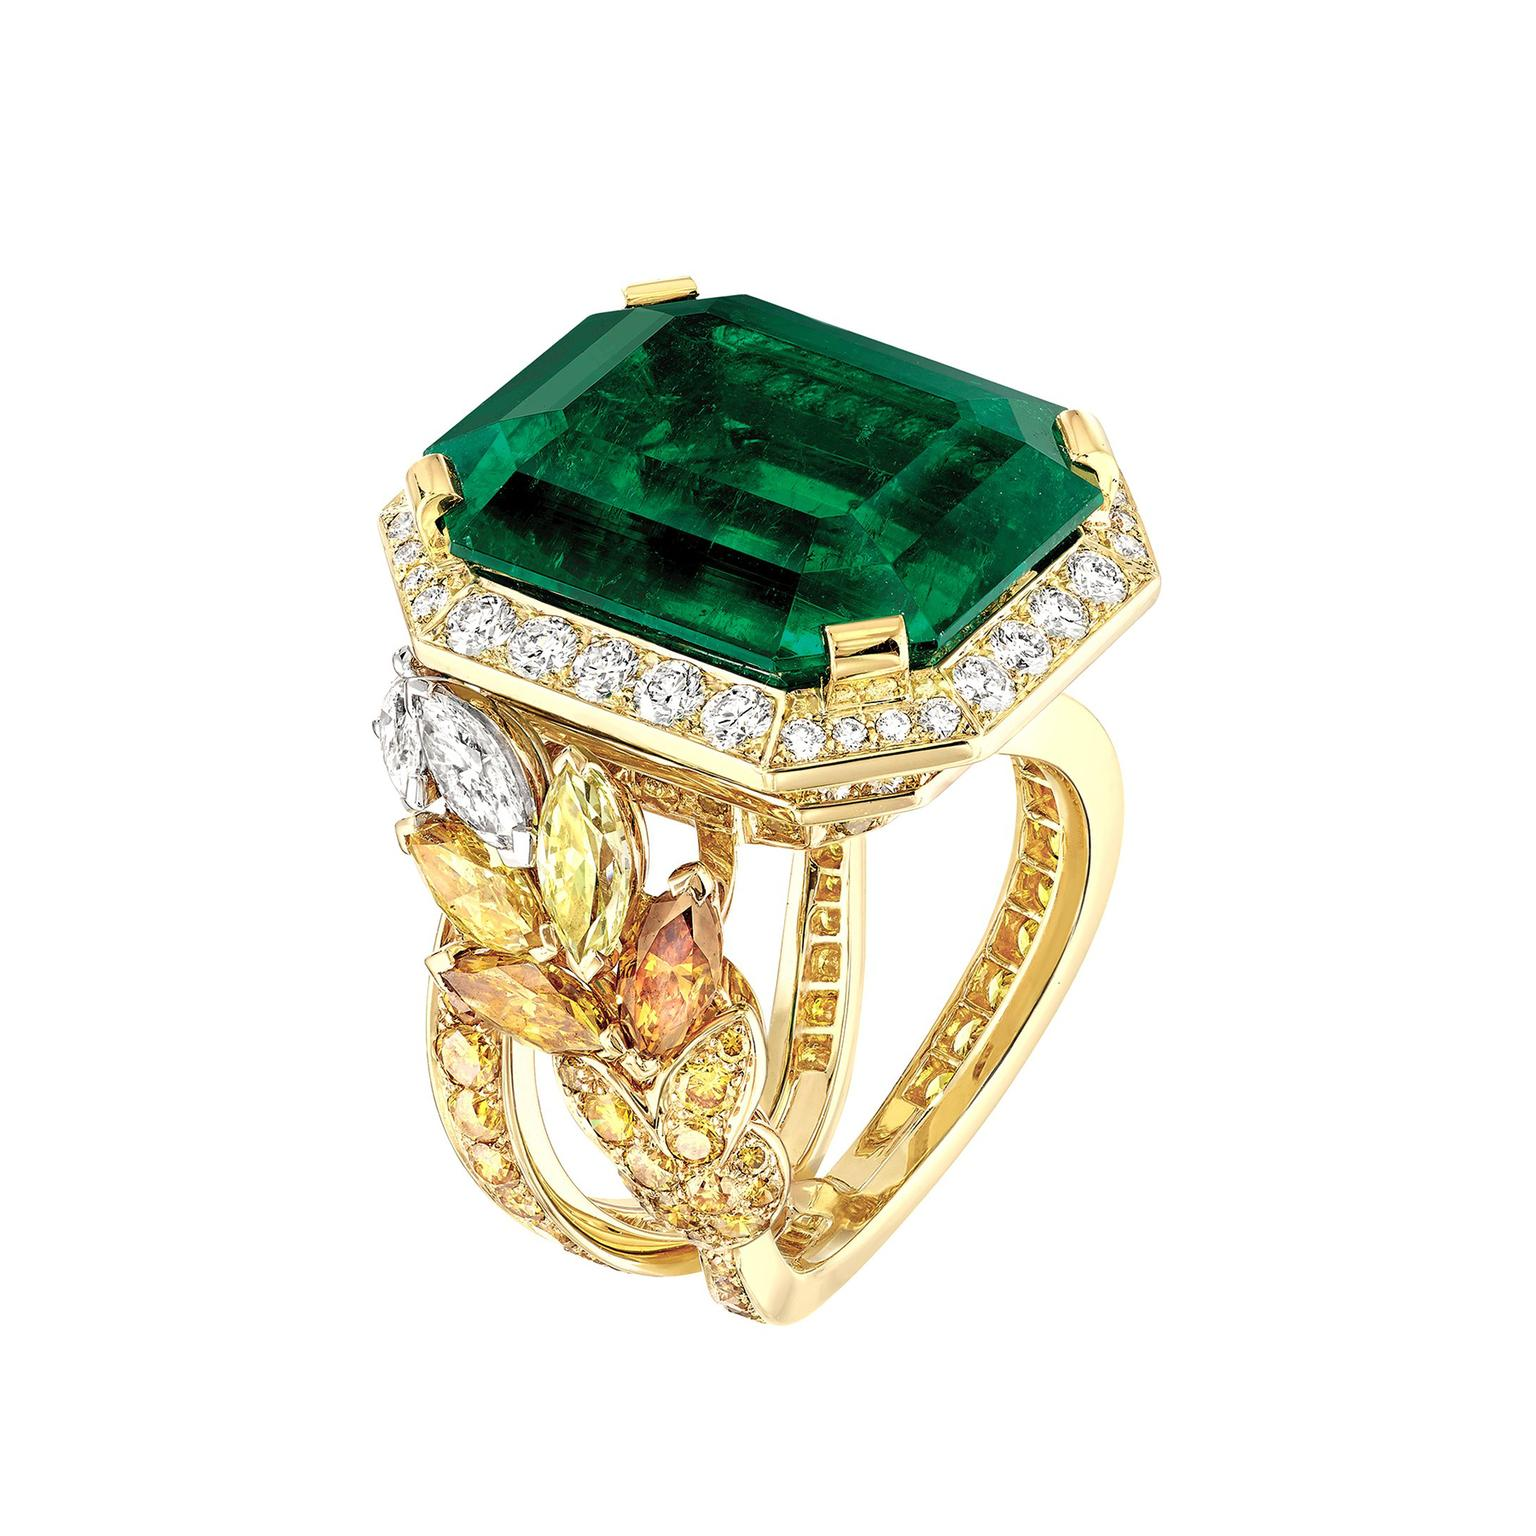 Chanel Les Blés Epi Vendome emerald ring